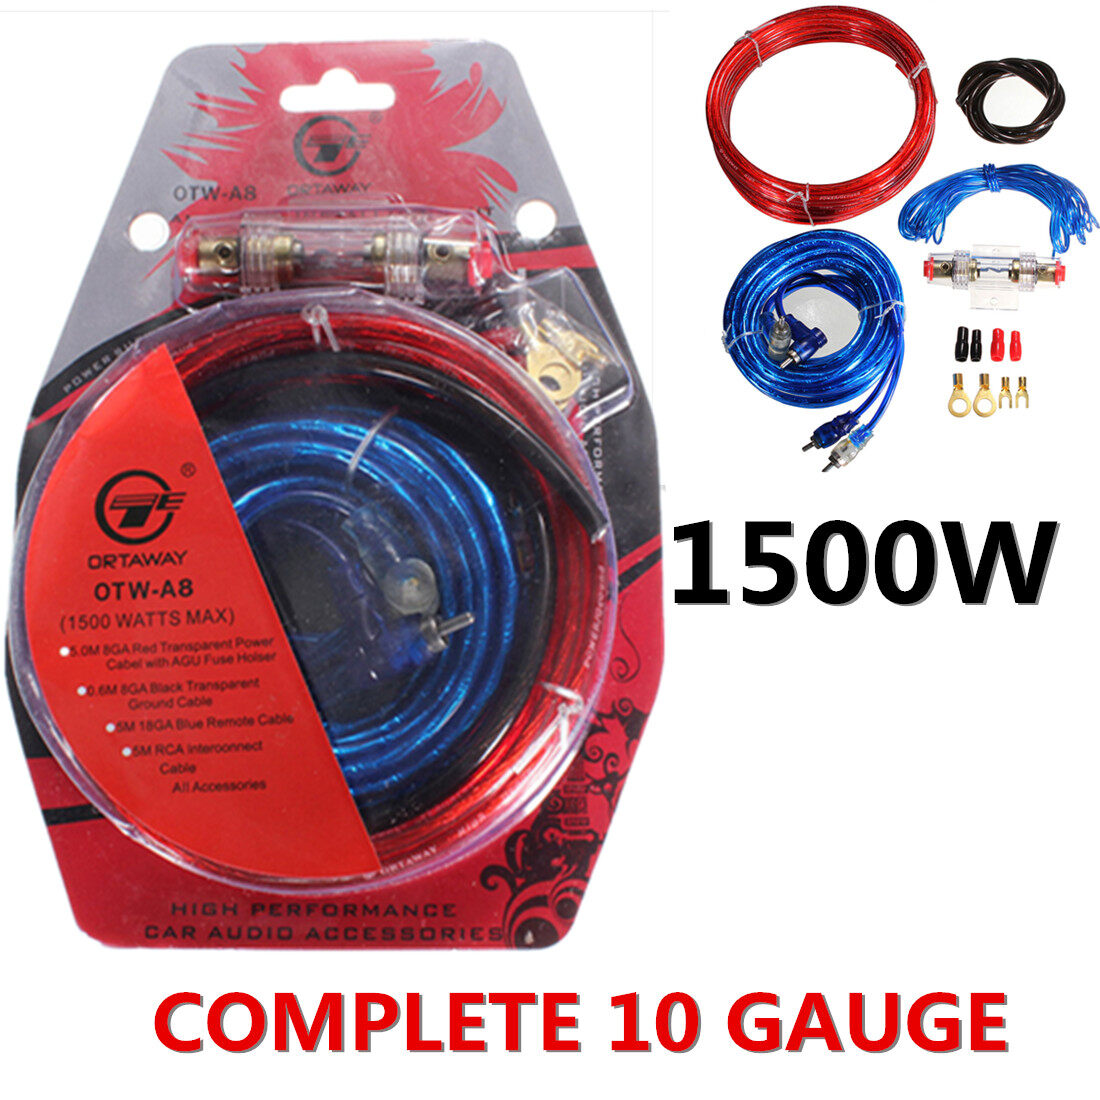 Car Subwoofer Wiring Kit Manual Guide Diagram 1500w Complete 10 Gauge Amp Amplifier Cable Speaker Sub Lazada Malaysia Audio